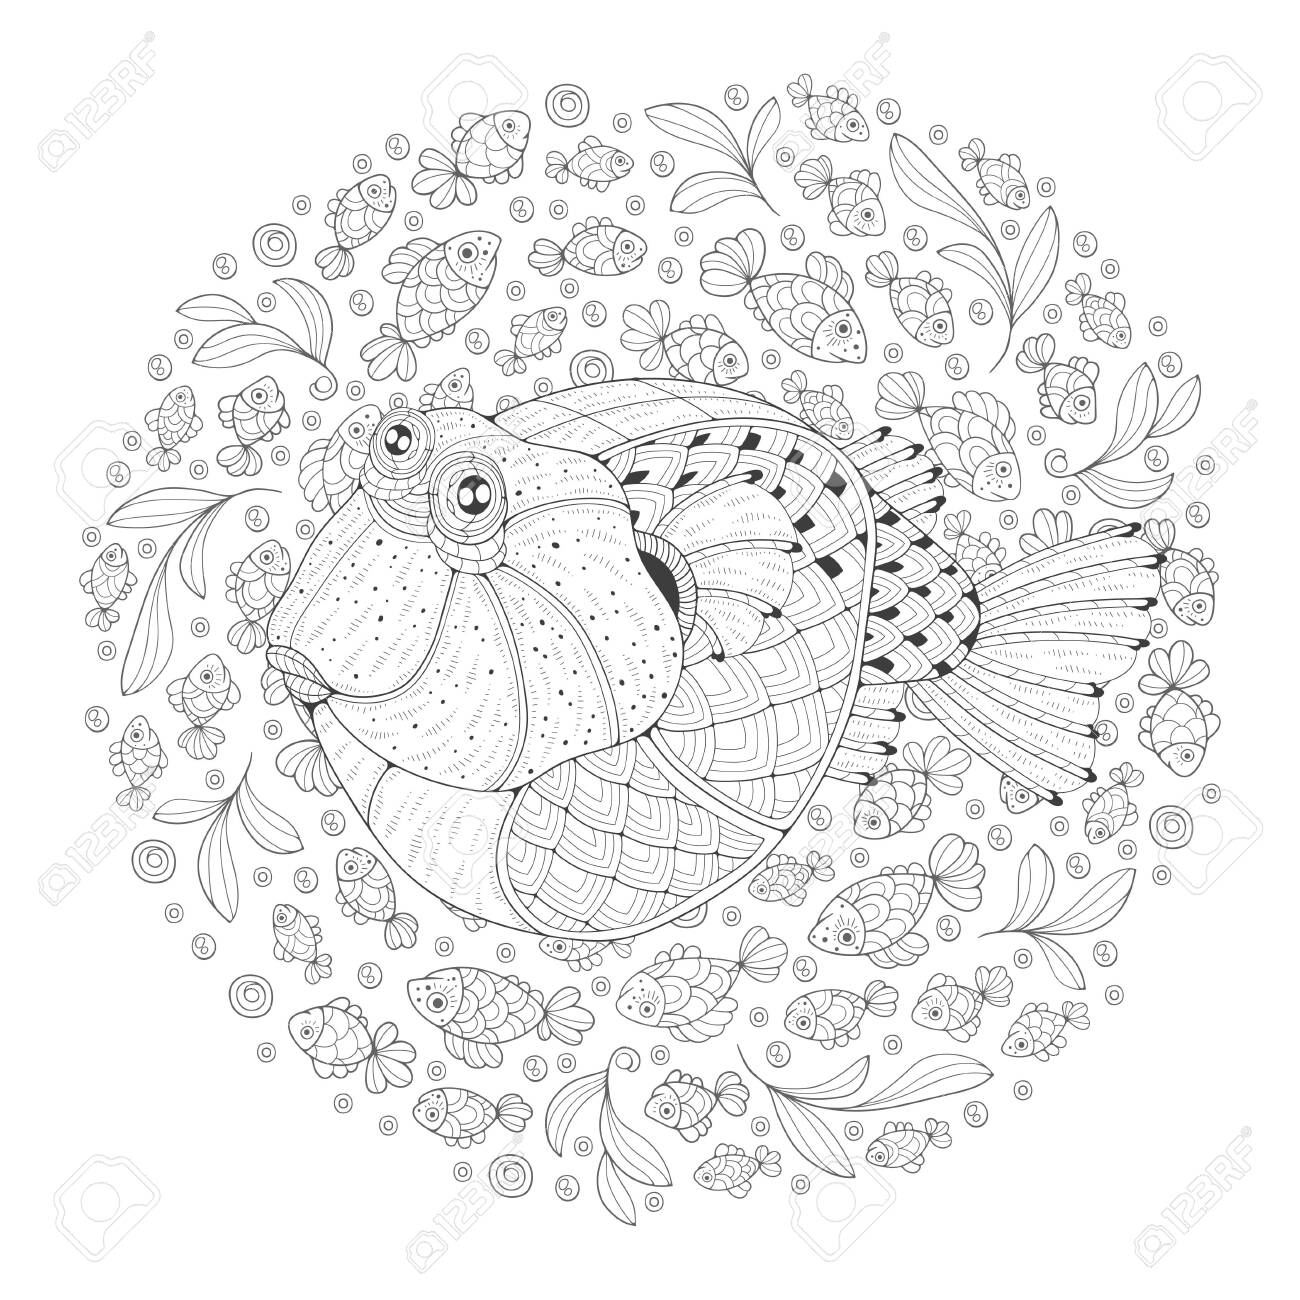 Puffer Fish Coloring Page - Free Pufferfish Coloring Pages ... | 1300x1300